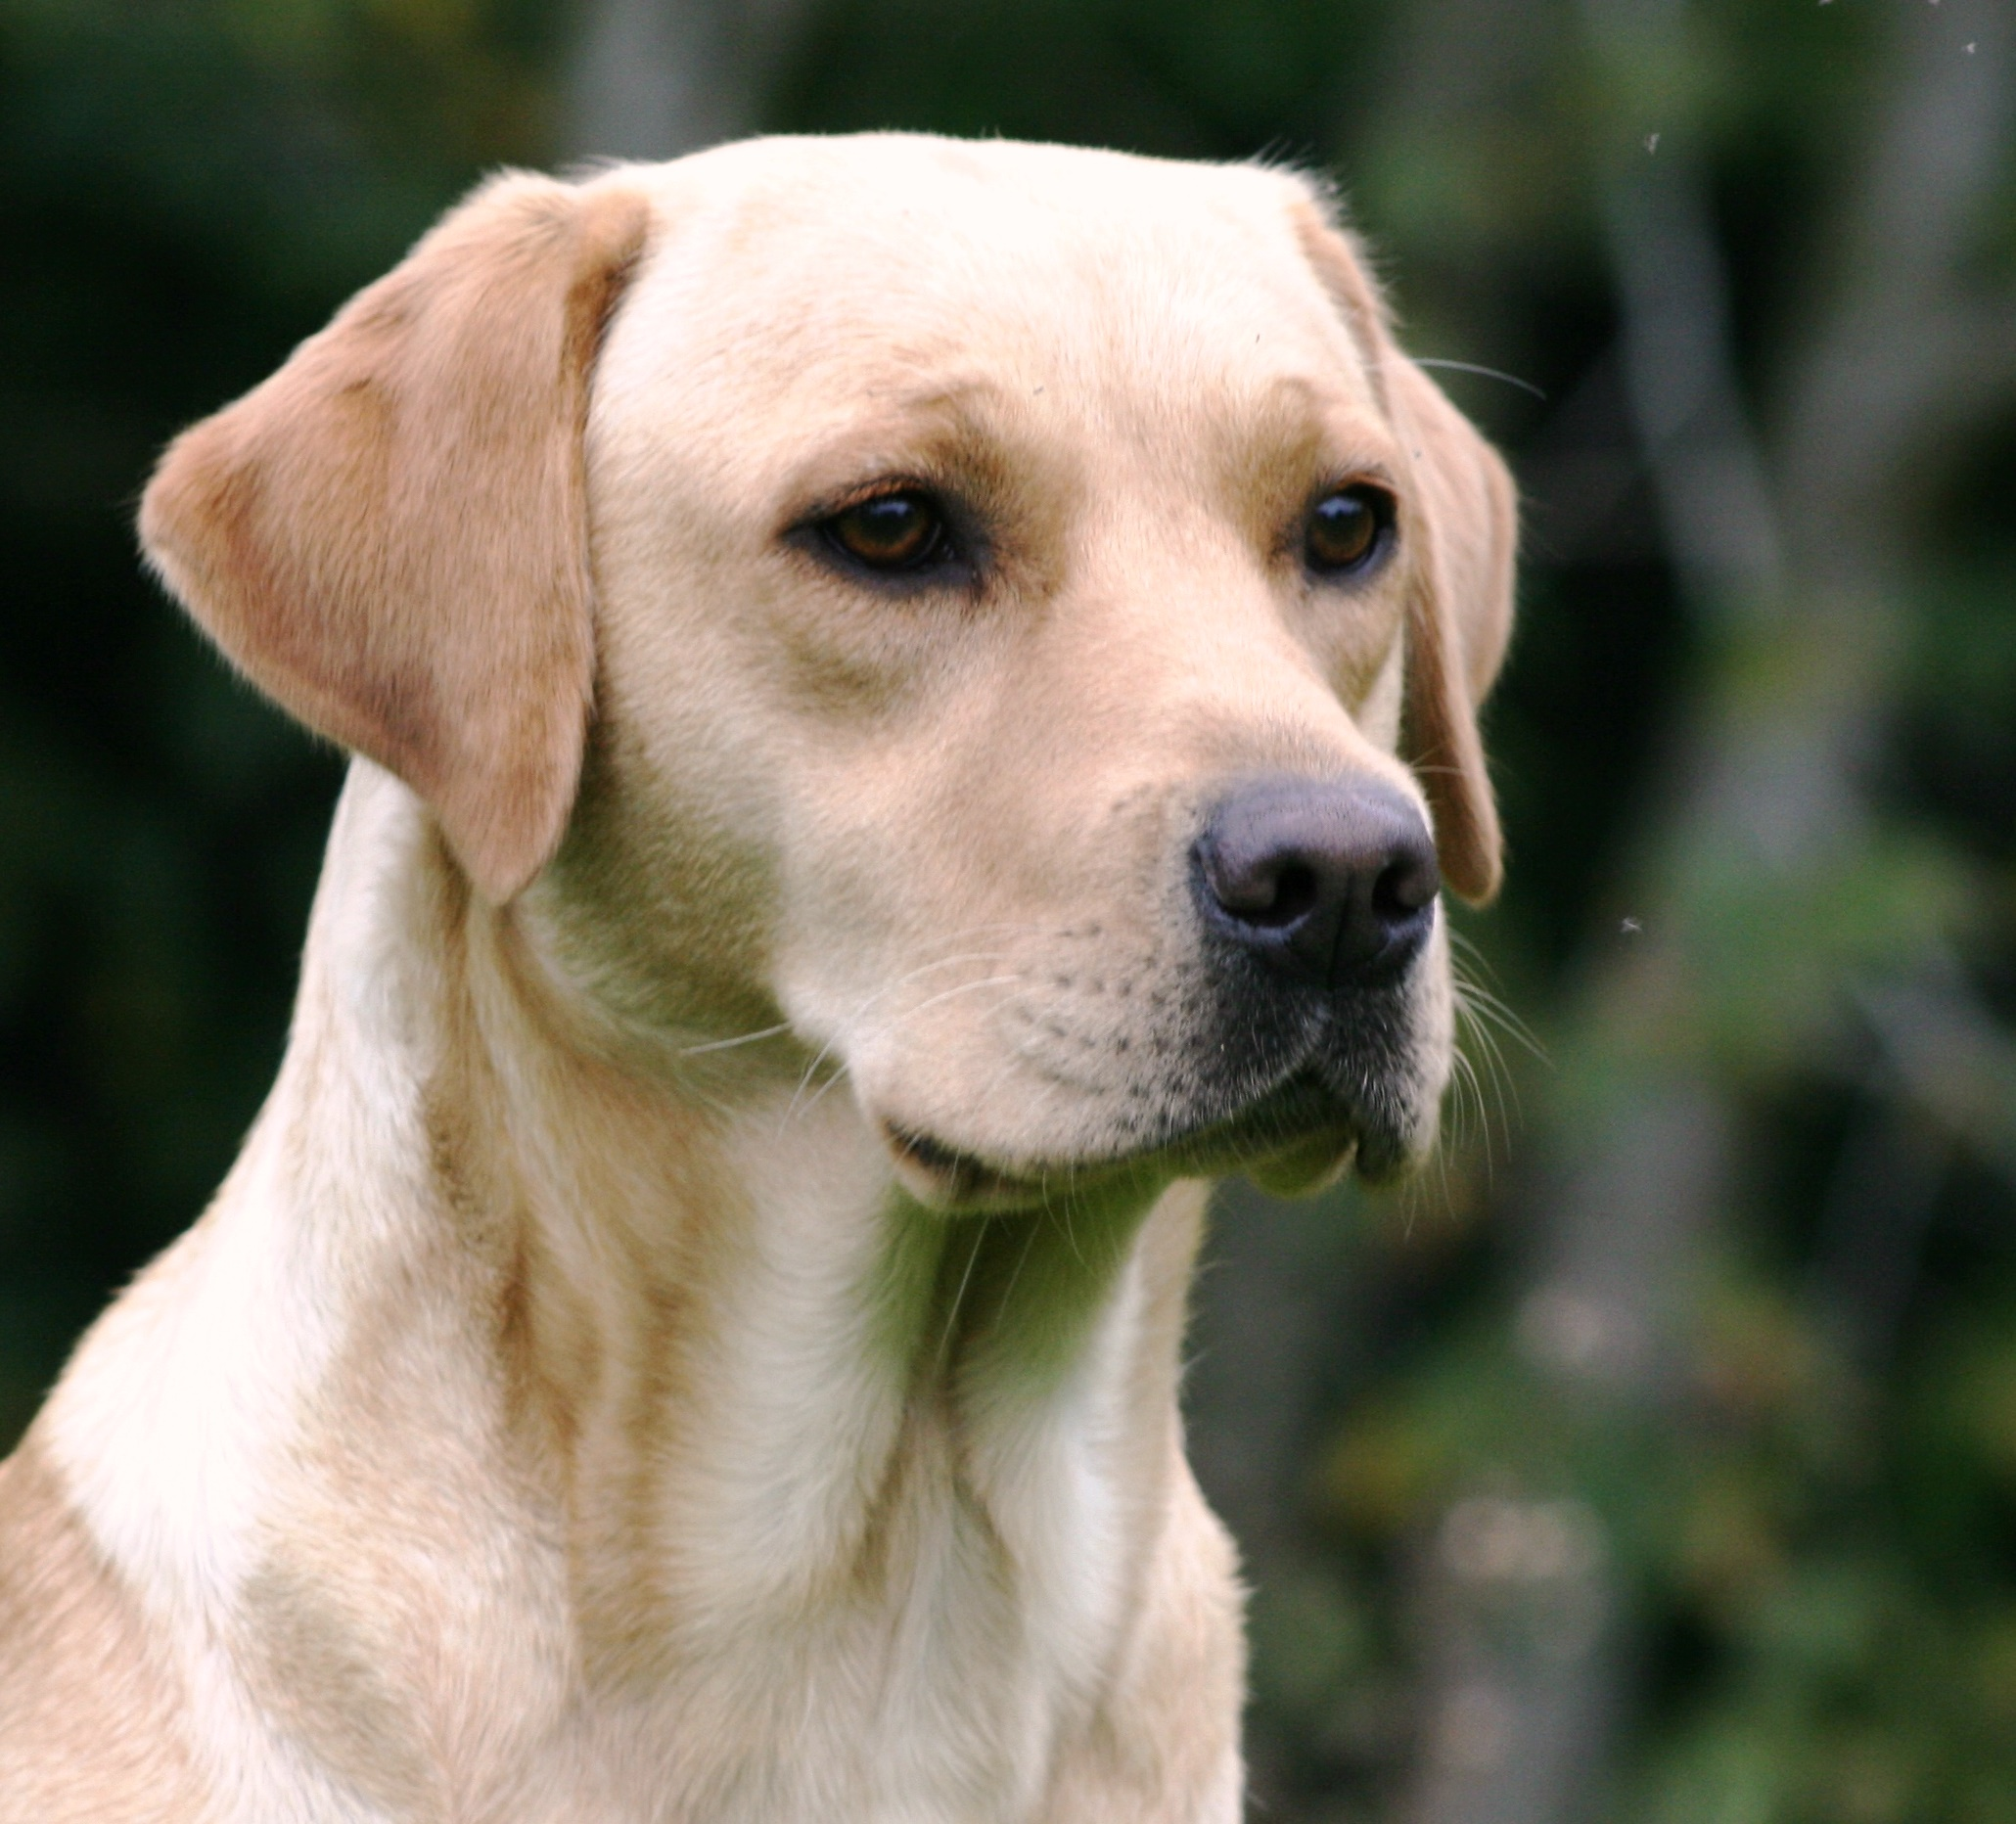 Fenway Working Labradors - Breed and Trained UK Labradors